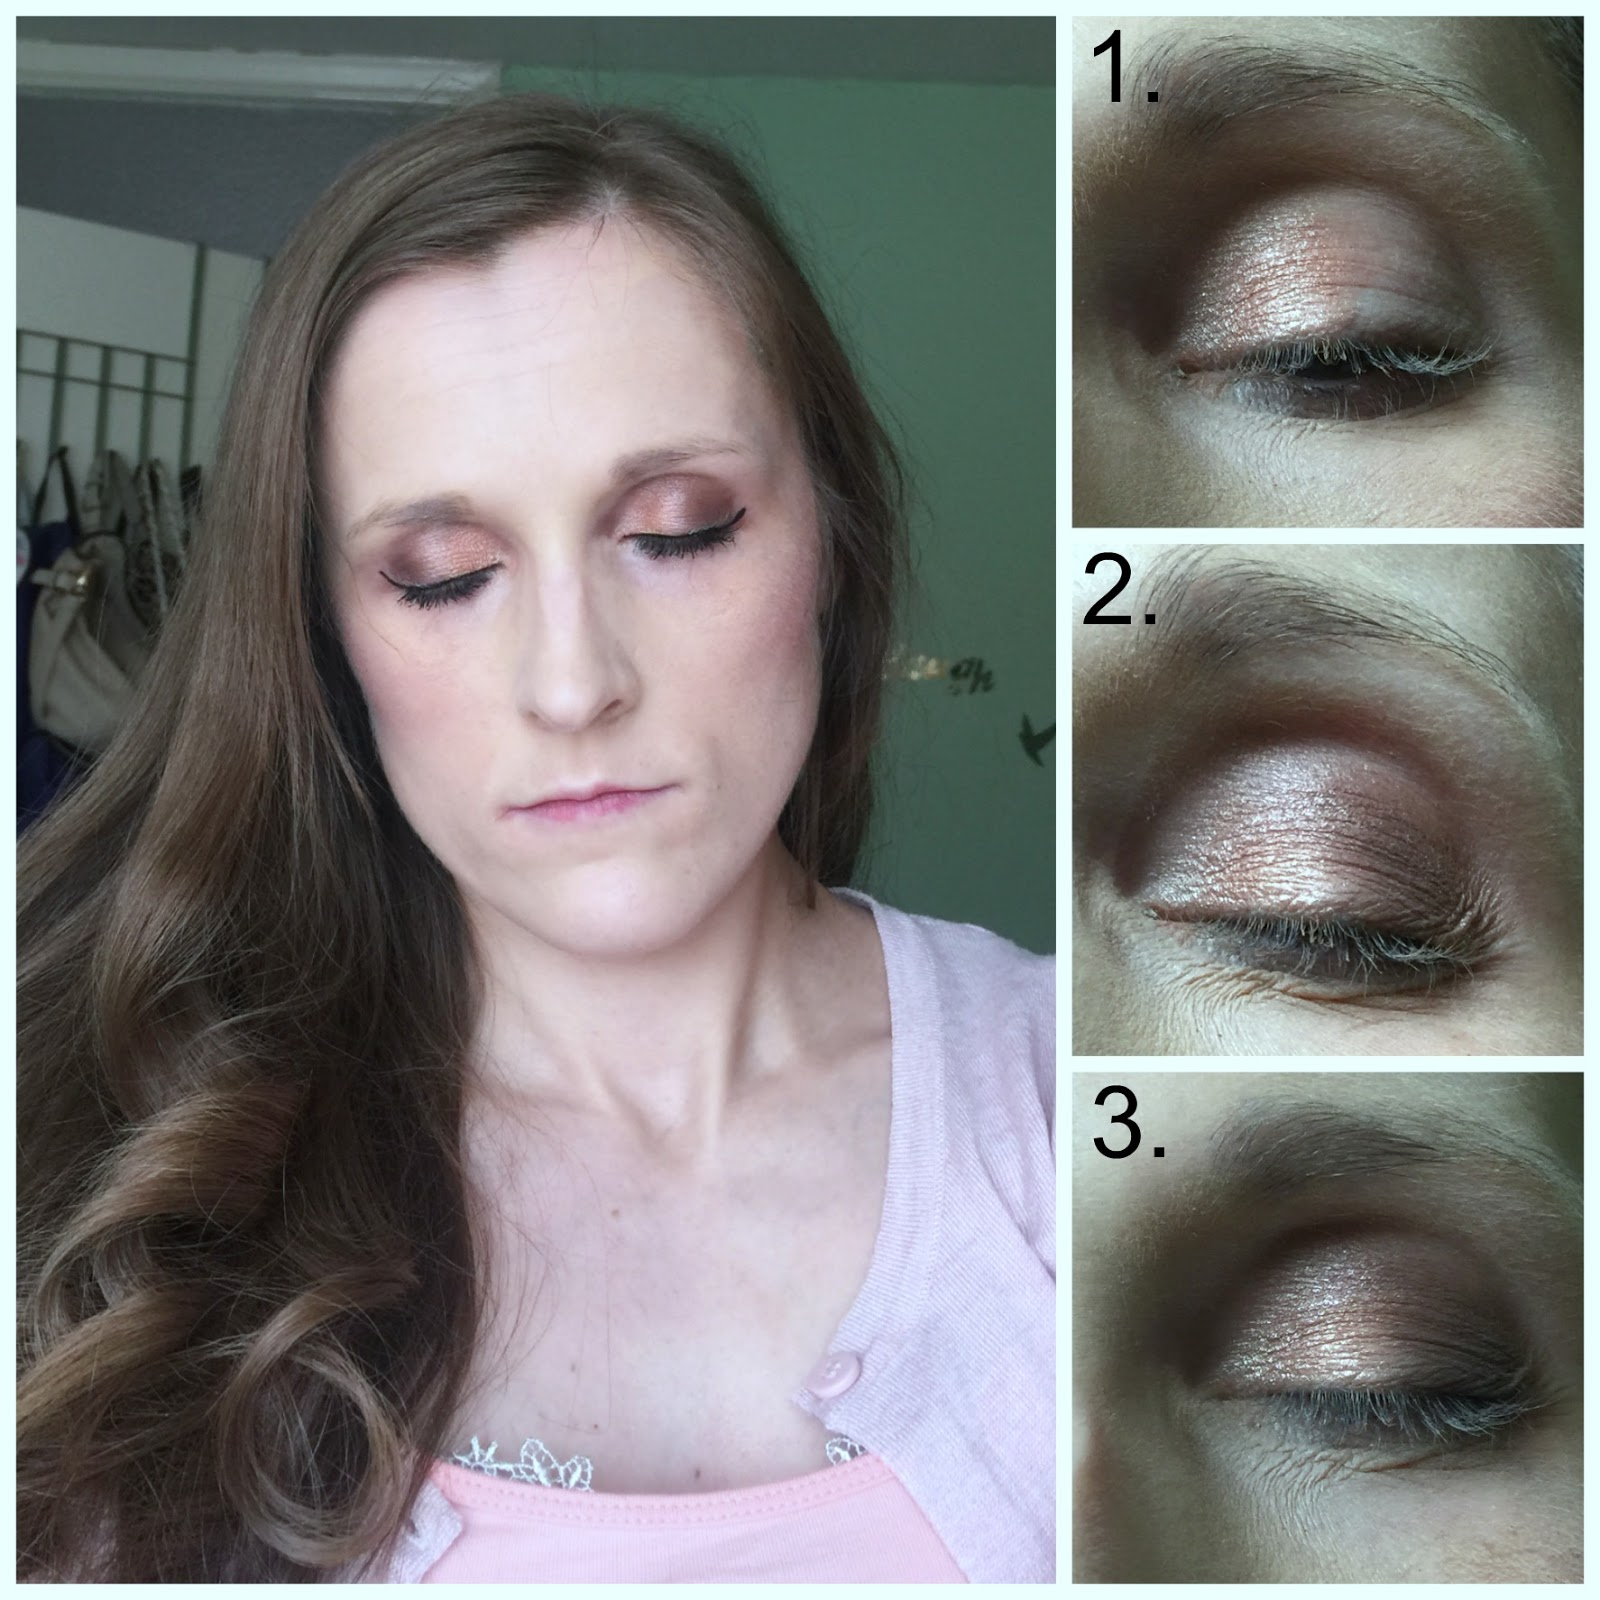 lottie london rose gold eyeshadow palette look divided intentions